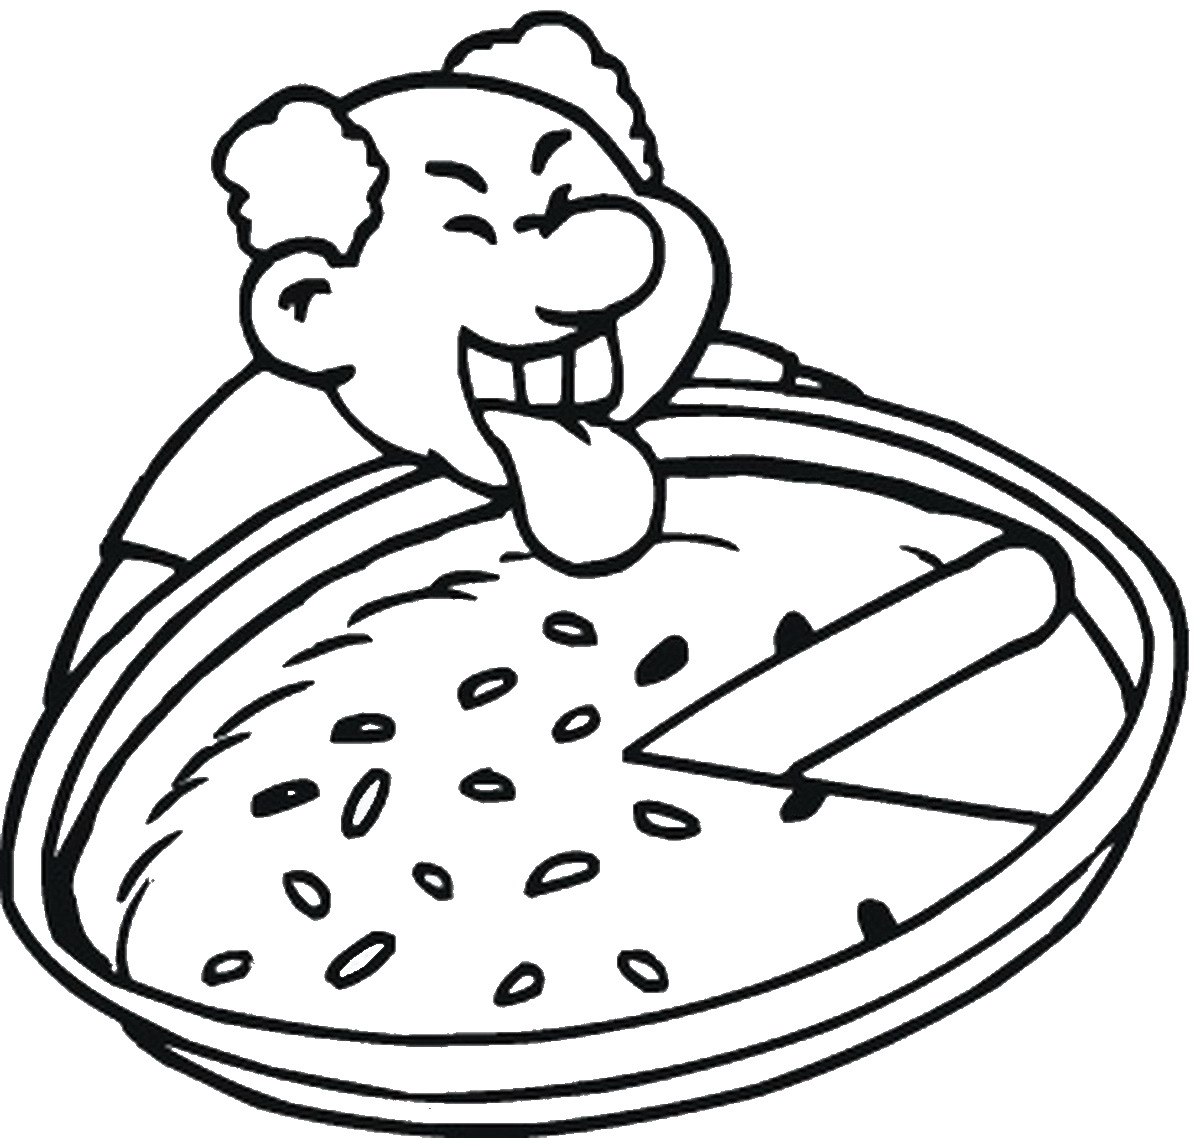 1200x1138 Pizza Coloring Pages